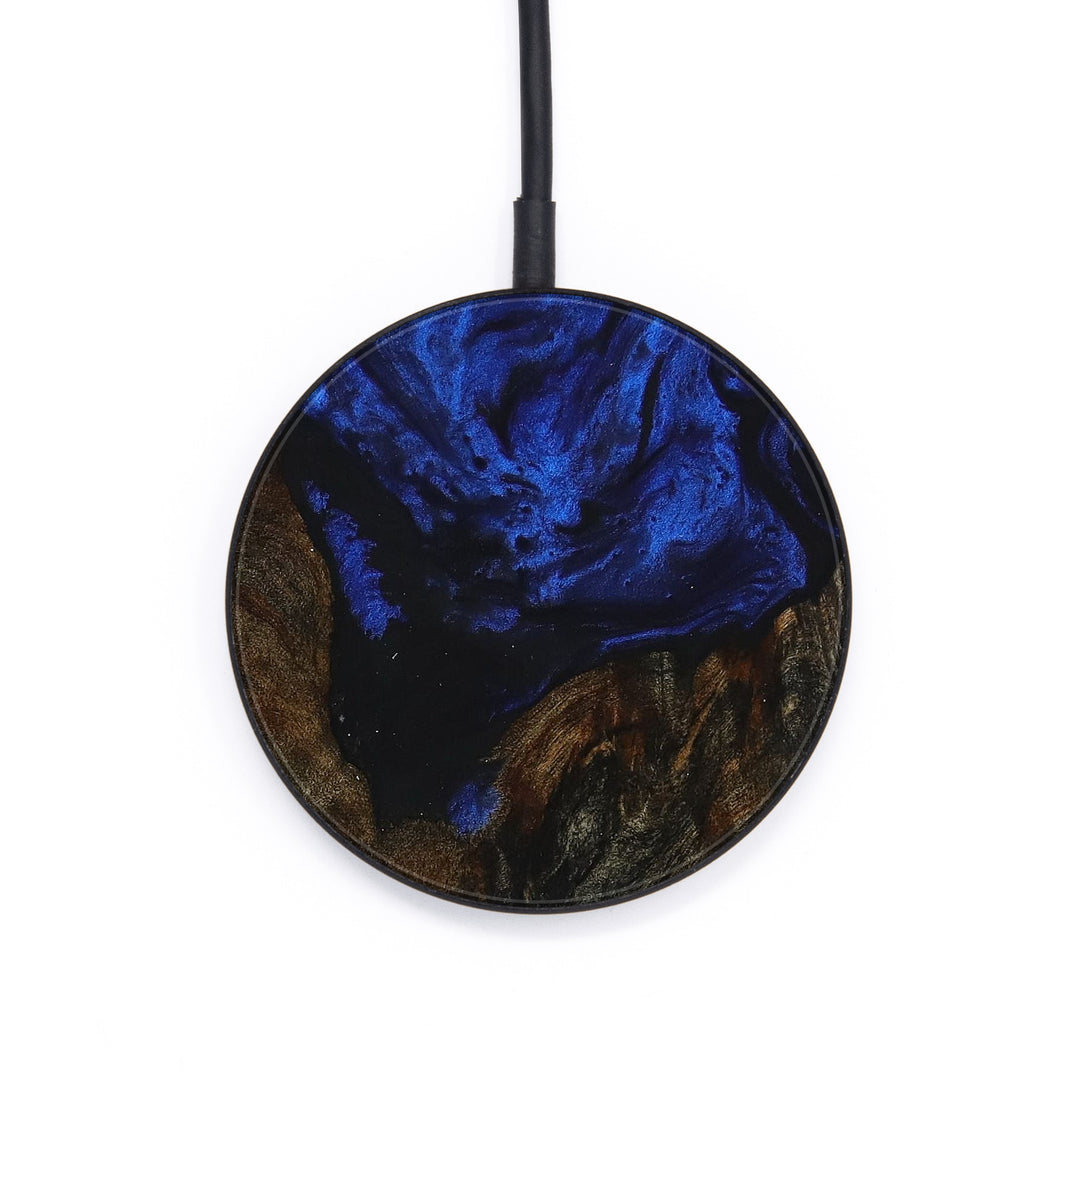 Circle Wood+Resin Wireless Charger - Henry (Dark Blue, 392927)